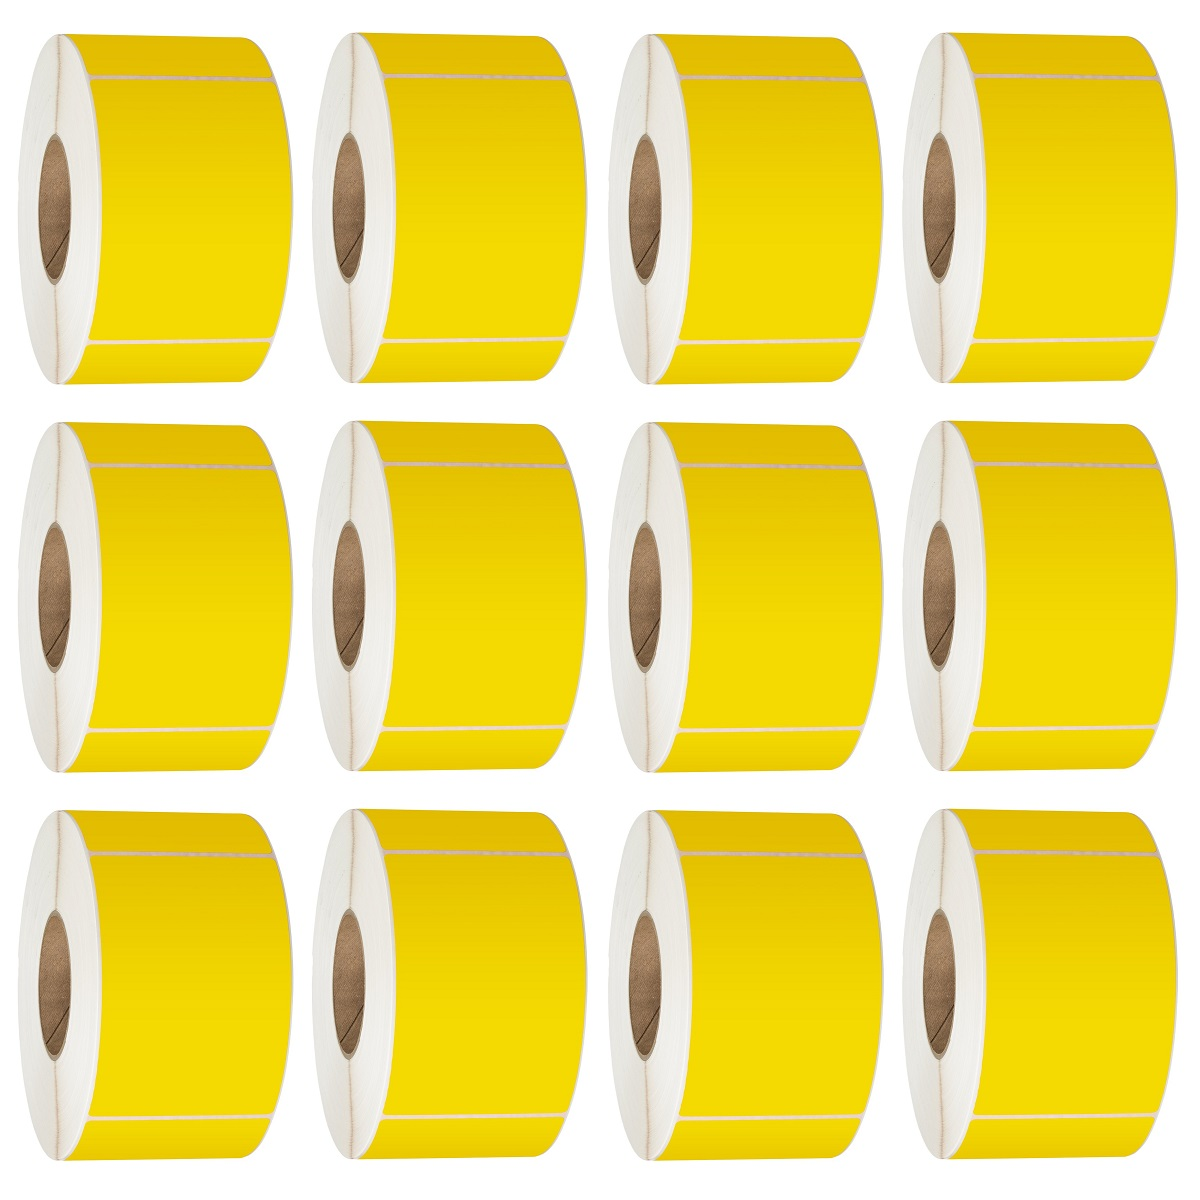 View 76X48 Thermal Transfer Labels 3000/Roll 76mm Core Yellow - 12 Rolls